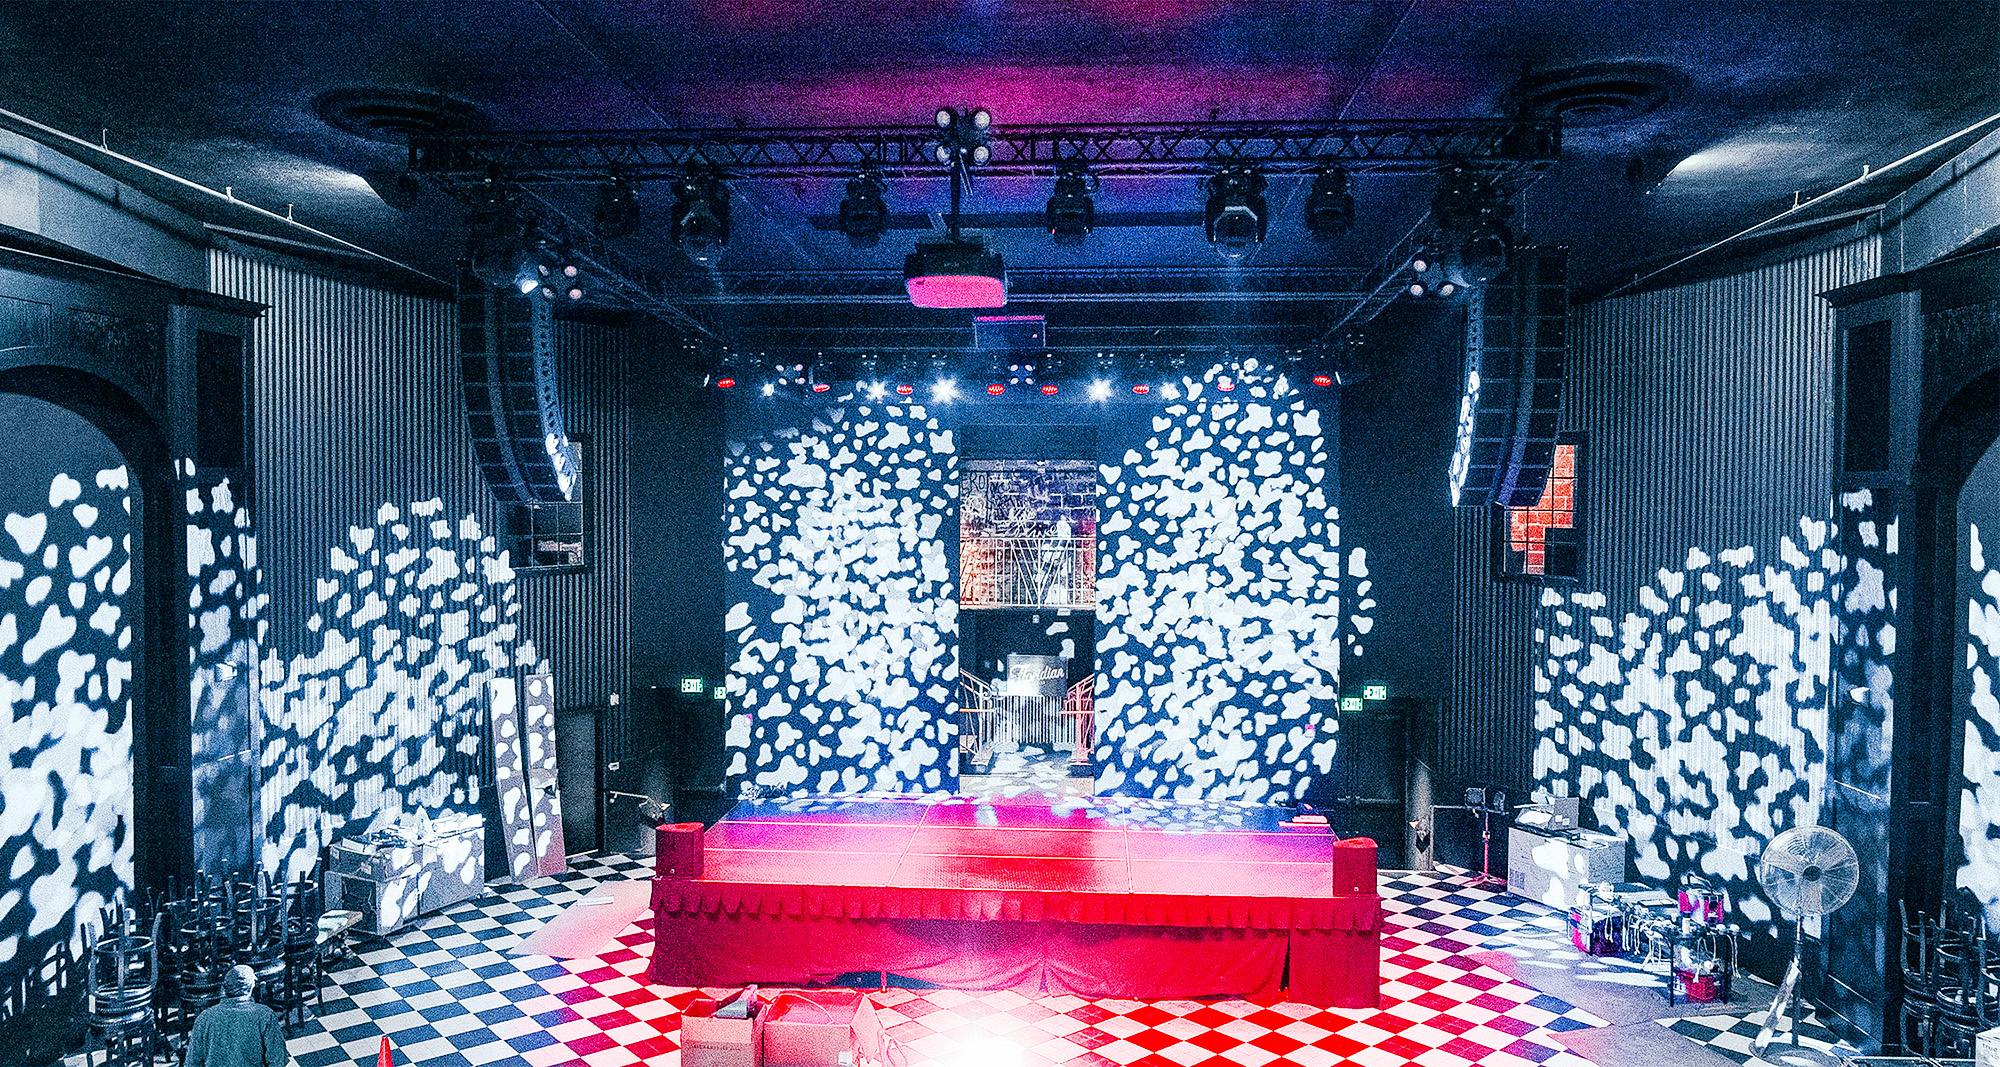 L-Acoustics Hangs Out At The Floridian Social Club featured image